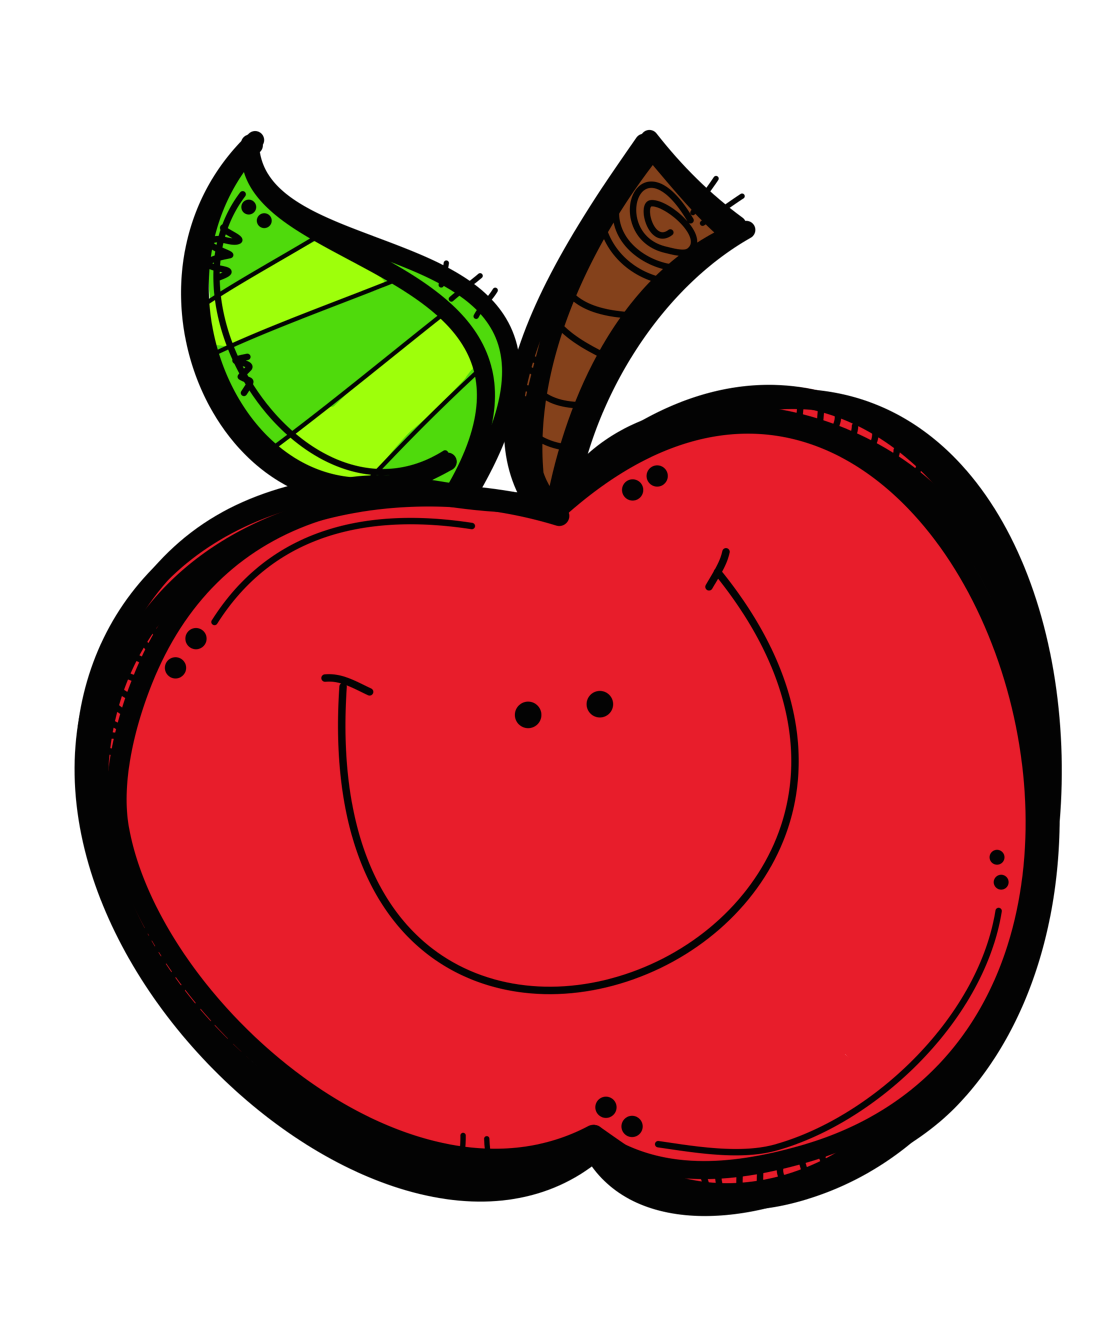 Apple clipart images free jpg 1 teacher apple clipart - ClipartFest jpg